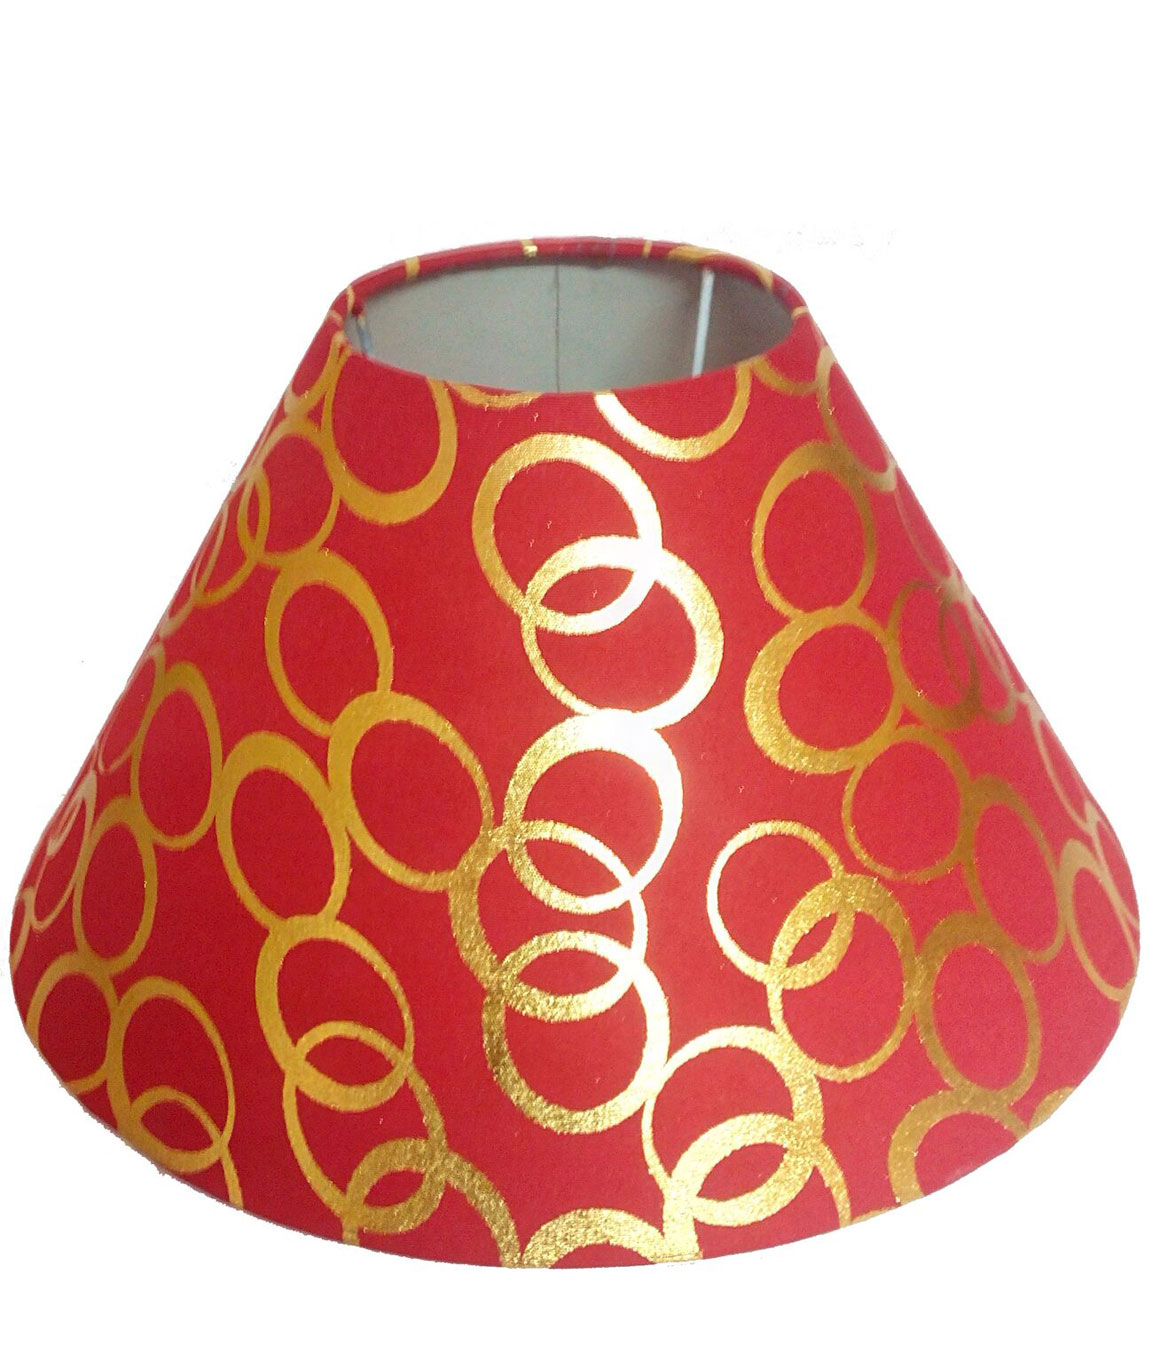 RDC 10 Inches Round Red with Golden Polka Dots Designer Lamp Shade for Table Lamp